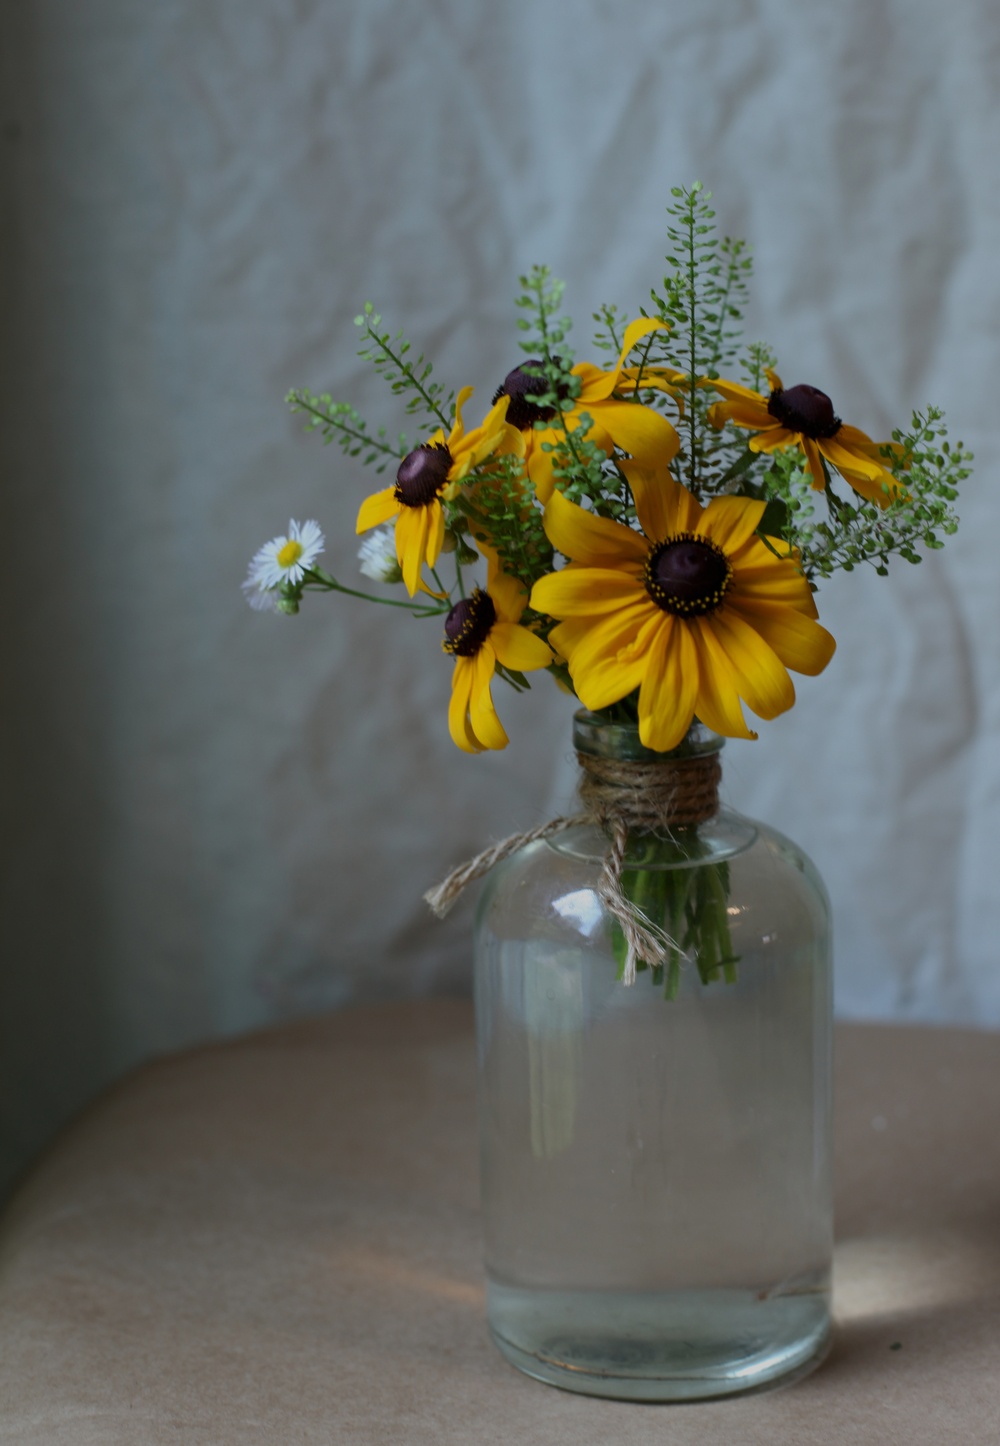 blackeyed susans.jpg